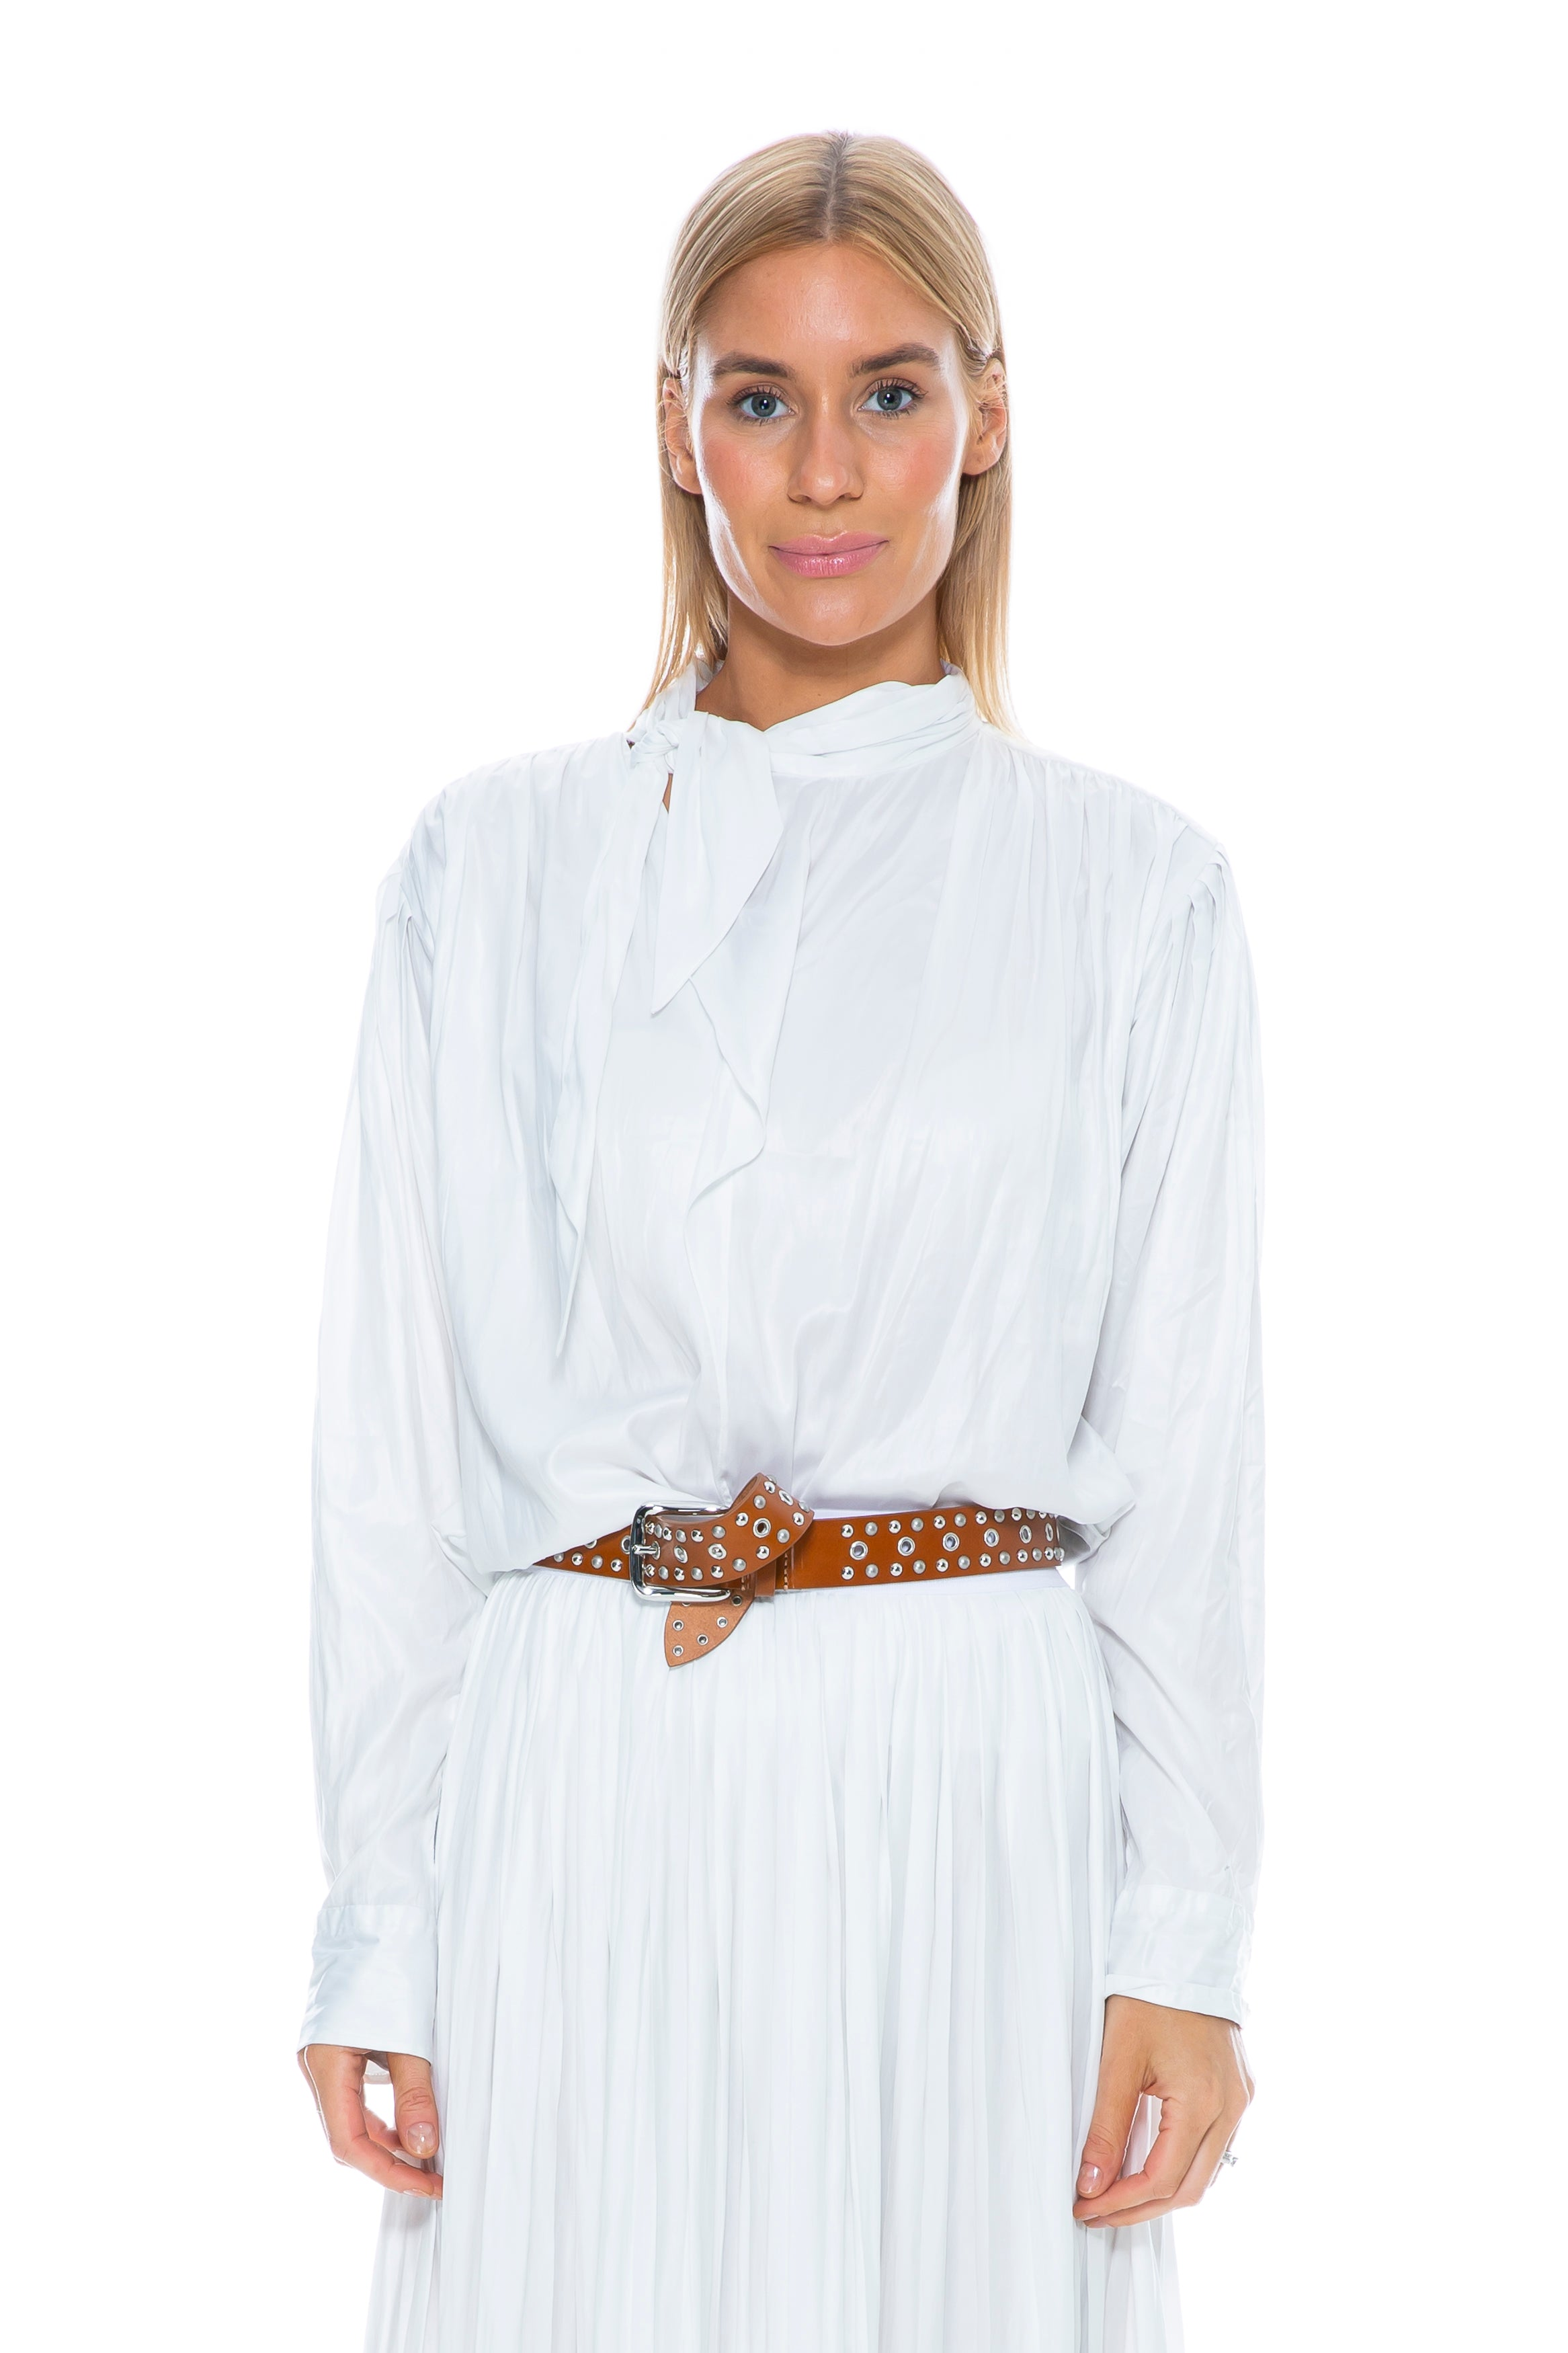 DEMMO TOP WHITE